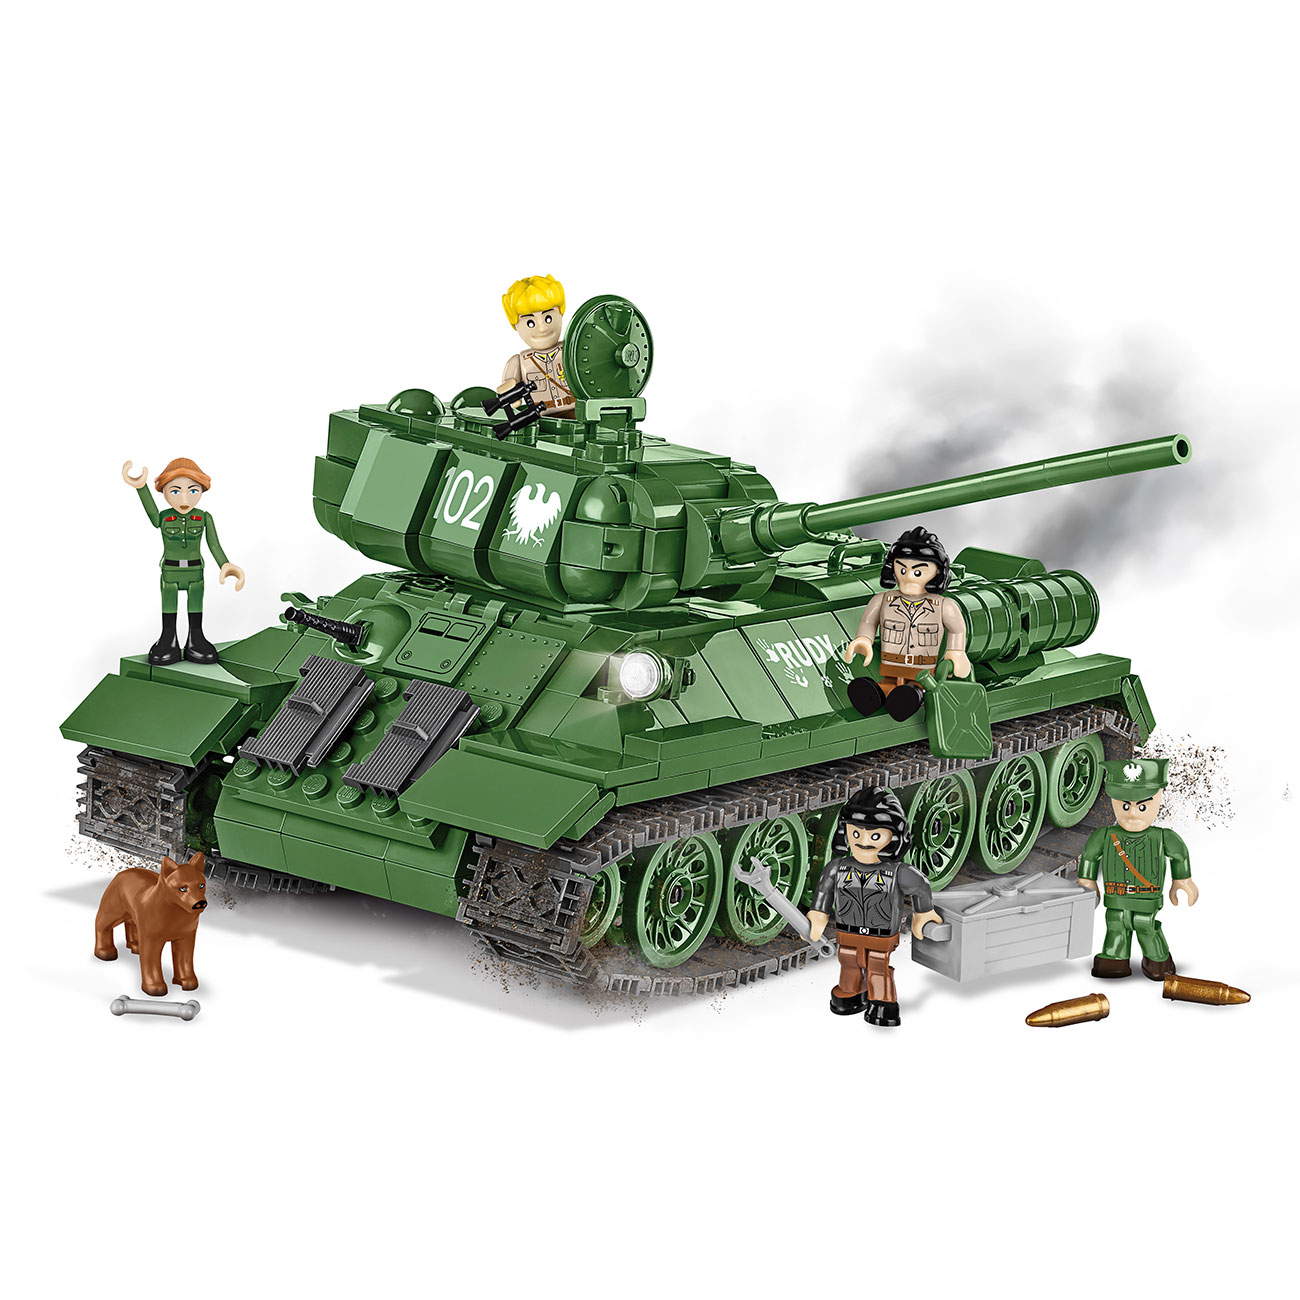 Cobi Small Army Collection Bausatz Panzer T34-85 Rudy 102 530 Teile 2524 Limited Edition 0